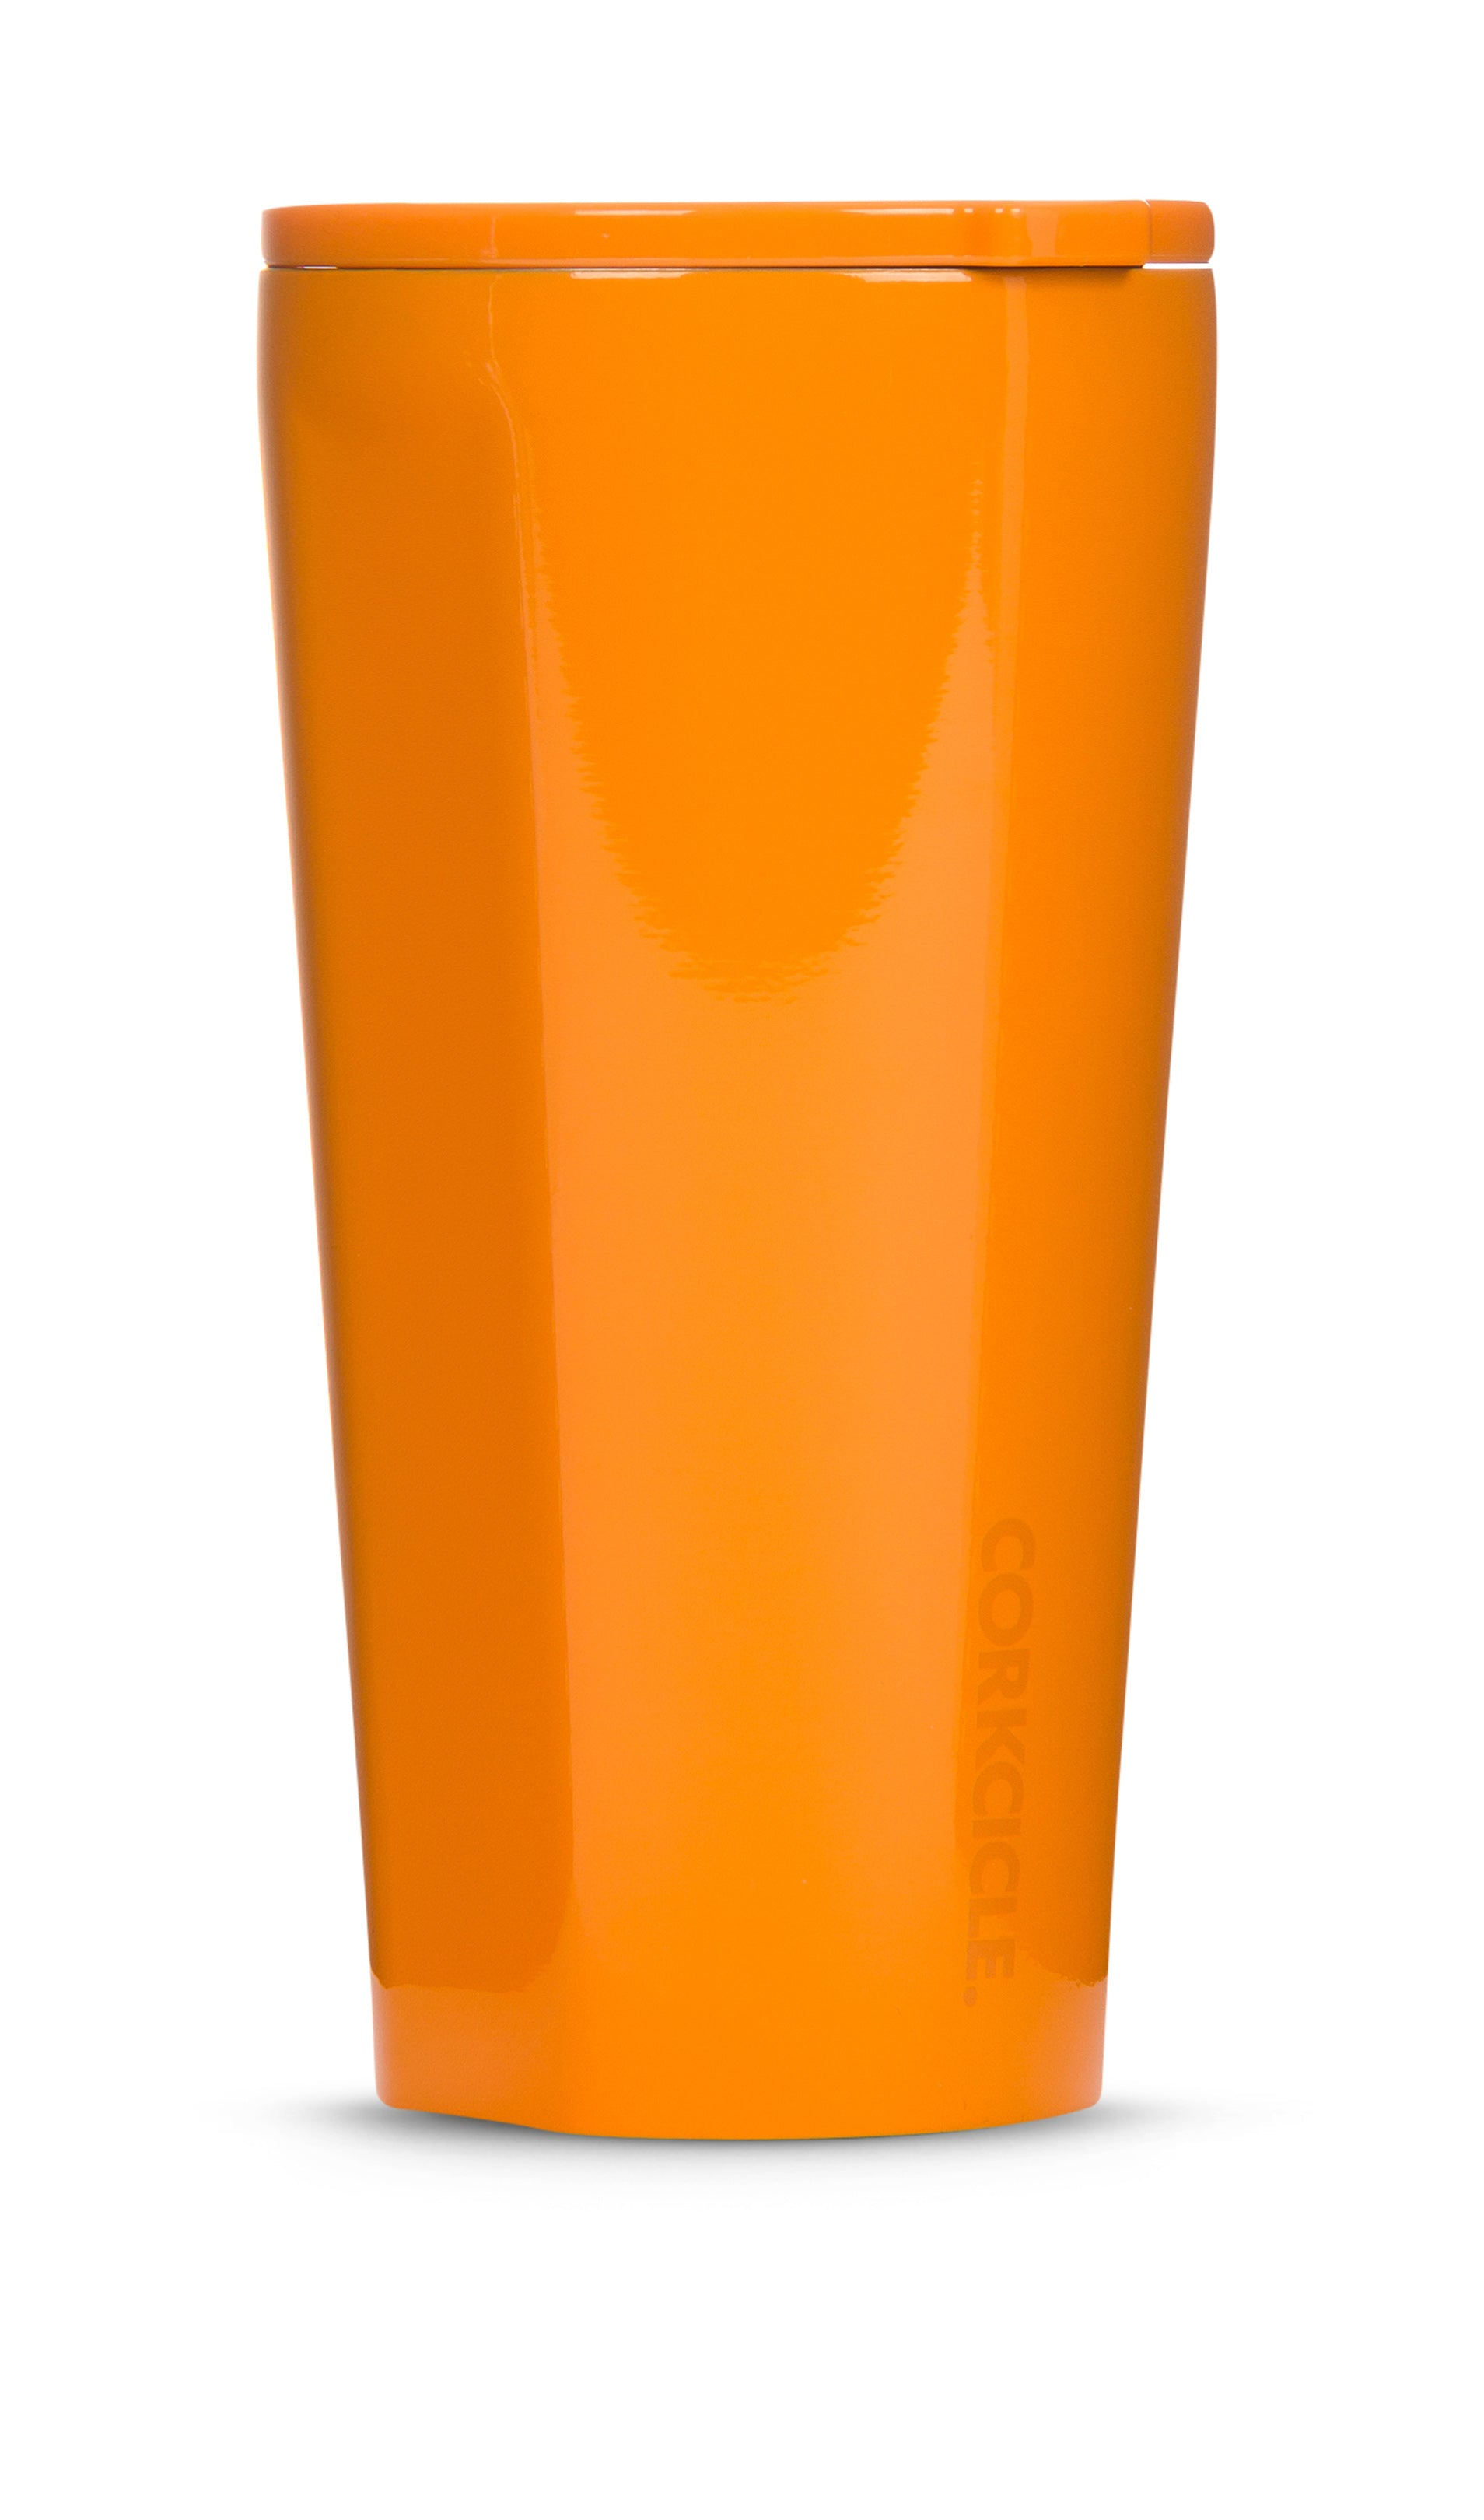 Corkcicle Tumbler 16oz/475ml - Dipped Clementine